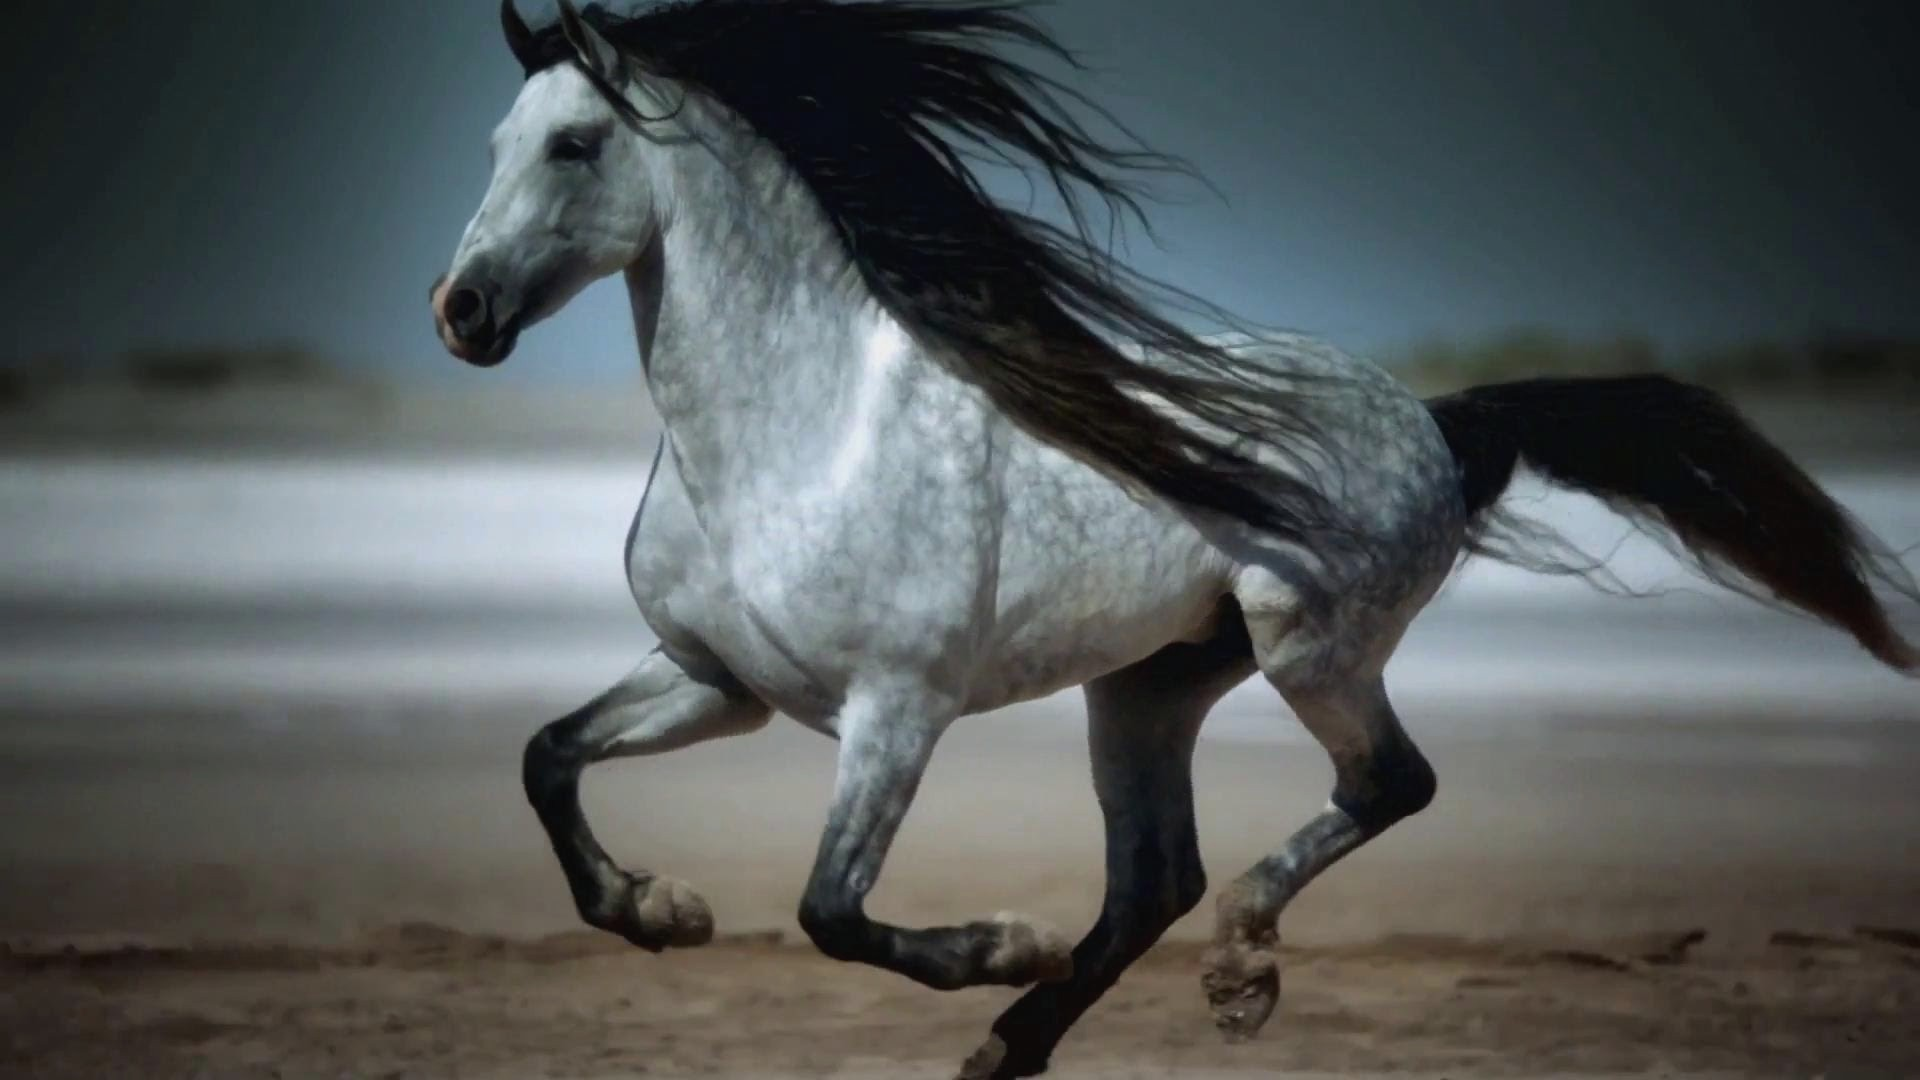 Horse New Wallpapers Beautiful Horse Galloping 282791 Hd Wallpaper Backgrounds Download